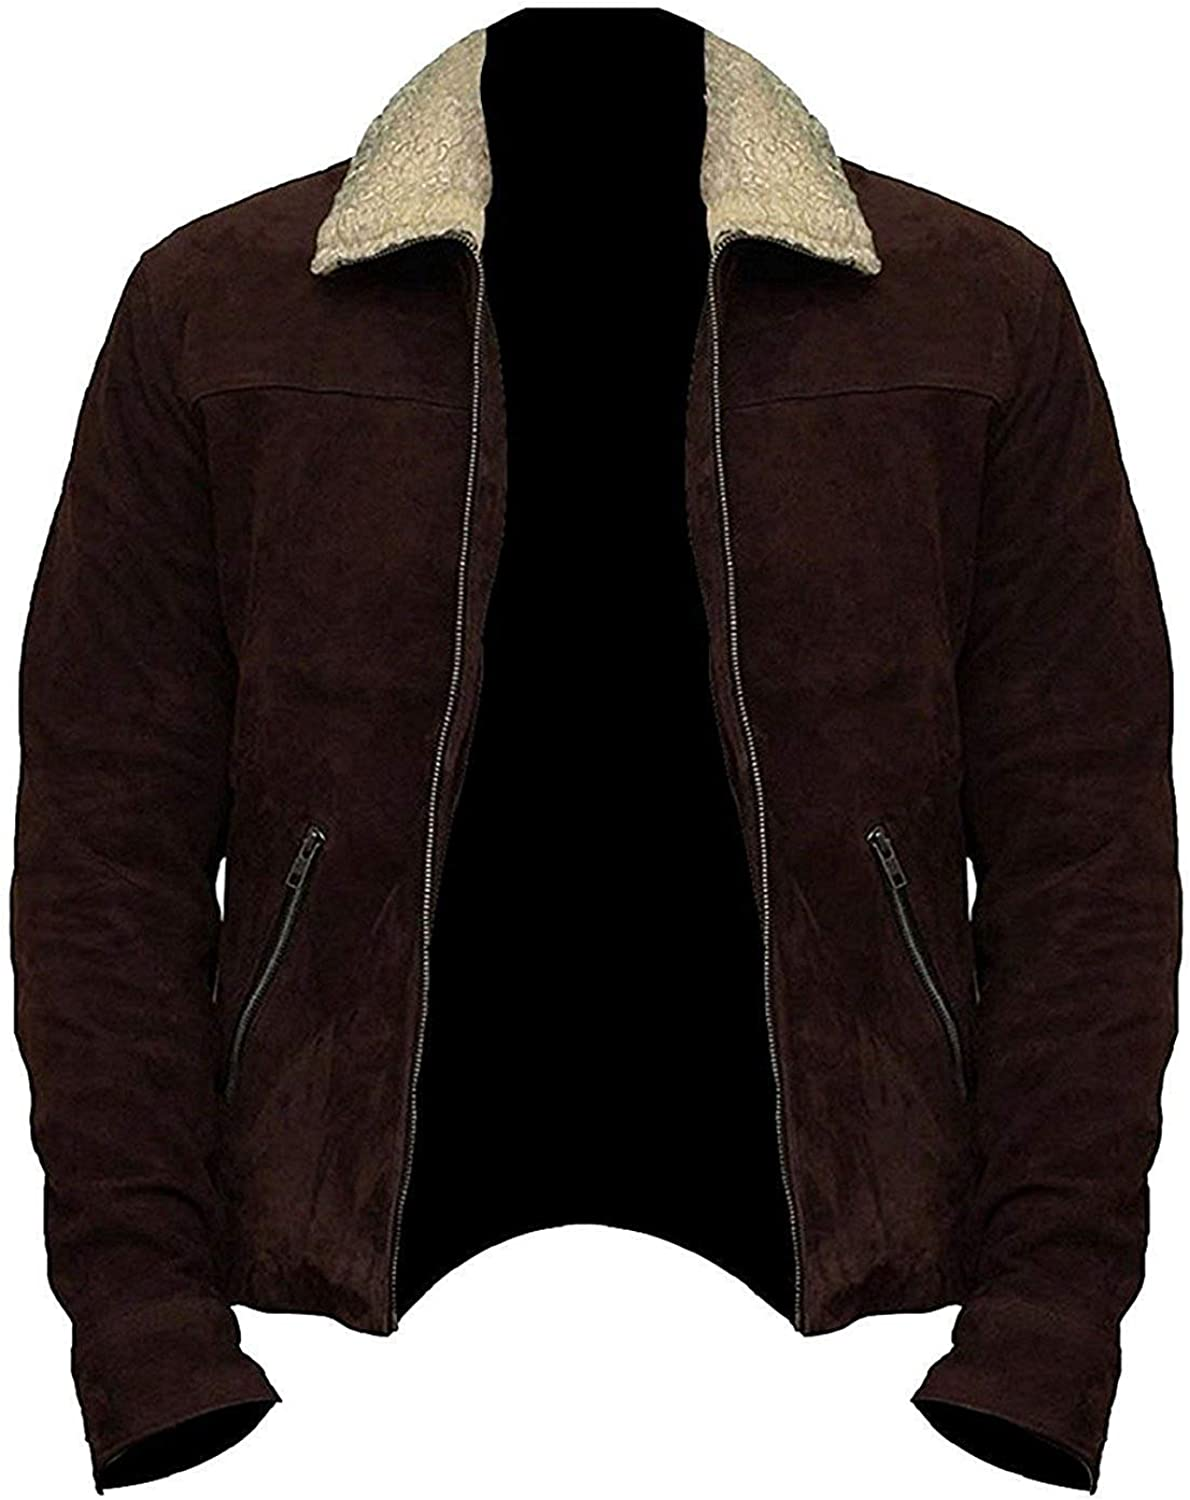 Mens Brown Suede Real Leather Jacket